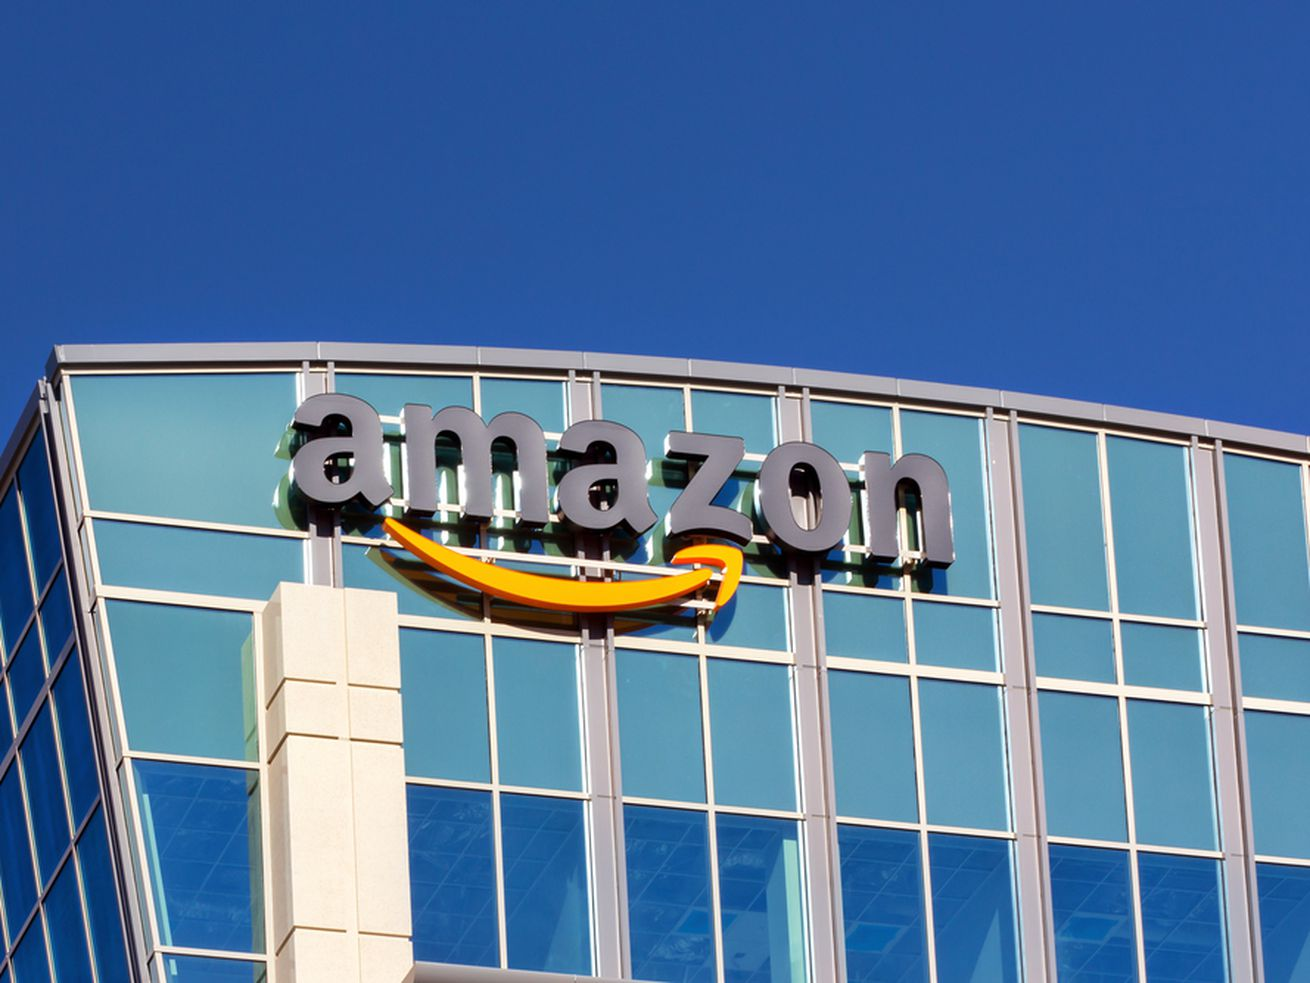 Amazon is moving into the pharmacy business. Local drugstores aren't happy about it